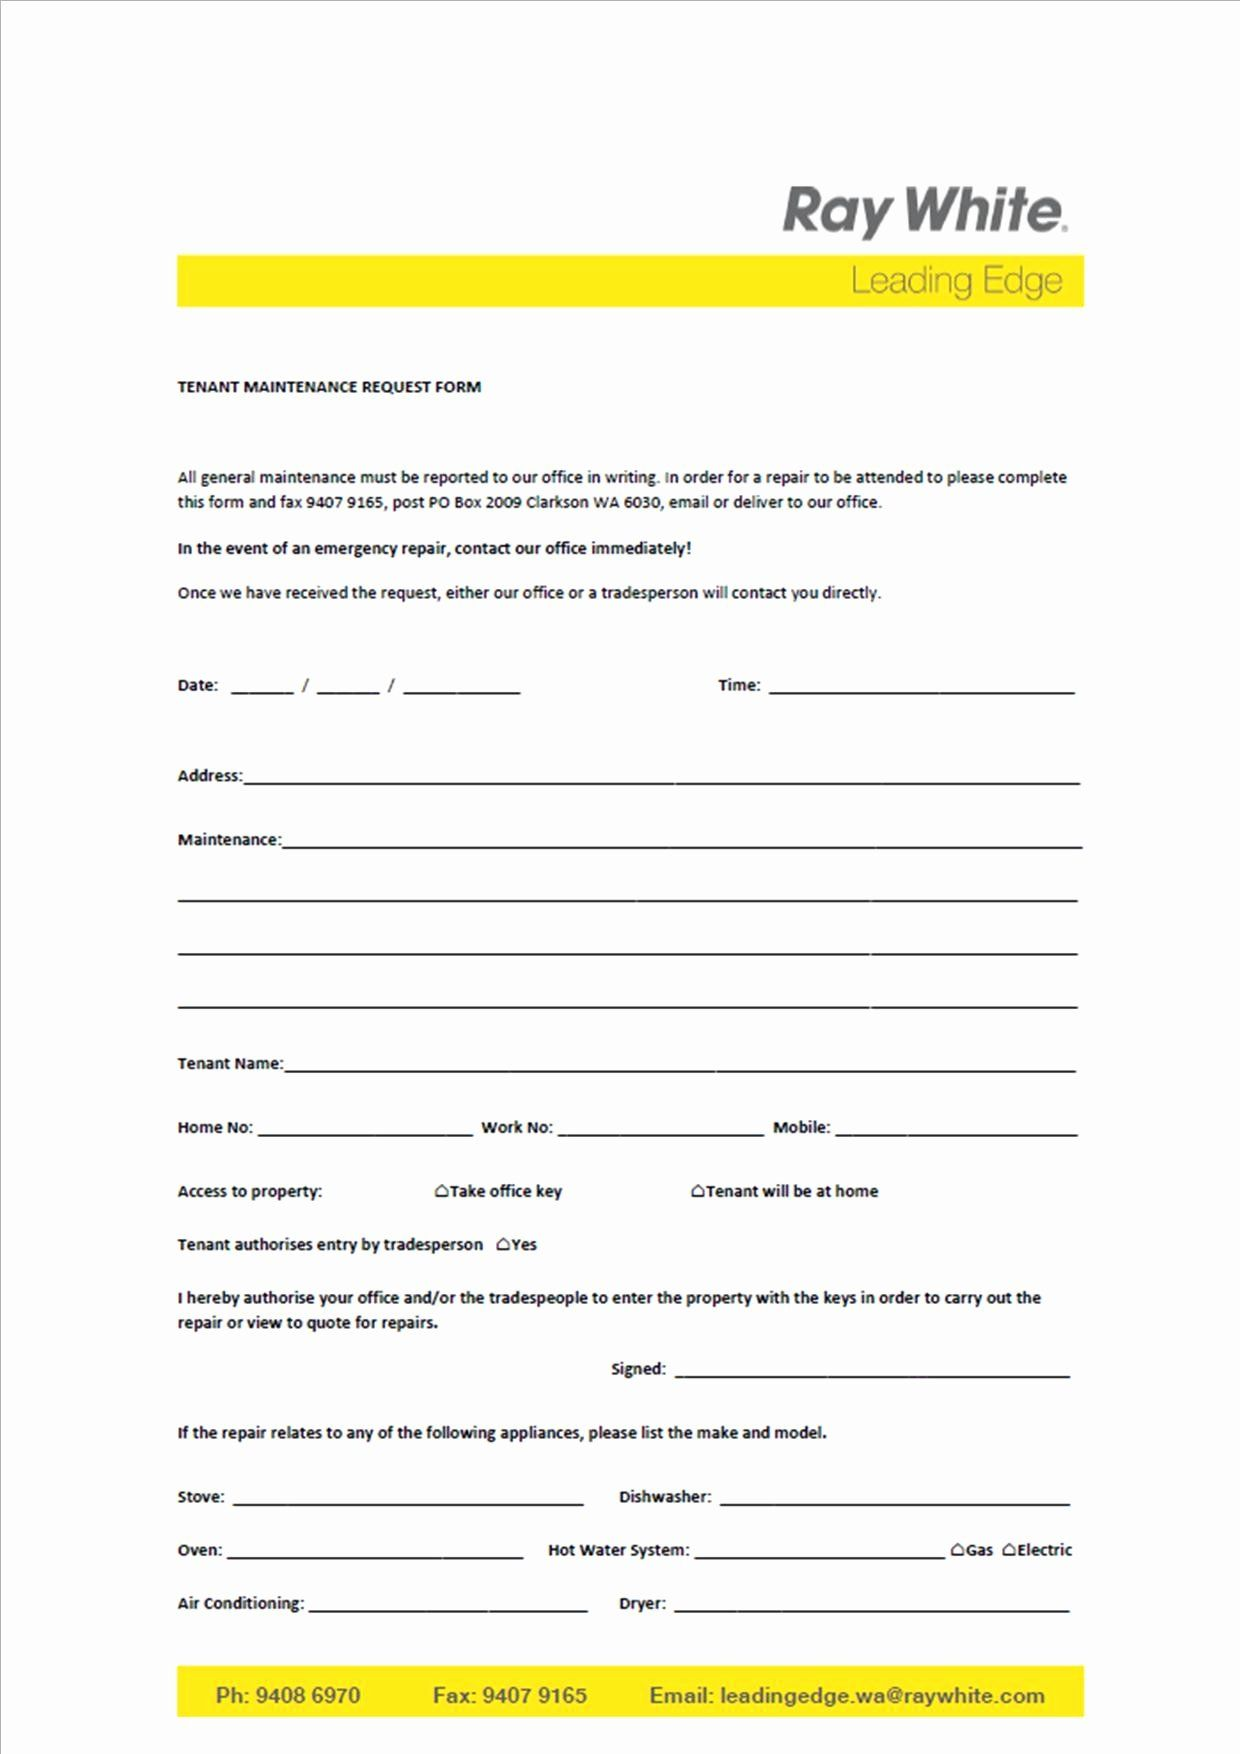 Tenant Maintenance Request Form Template Best Of Sample I Follow Up Letter To Landlord With Separation Agreement Template Marketing Strategy Template Templates